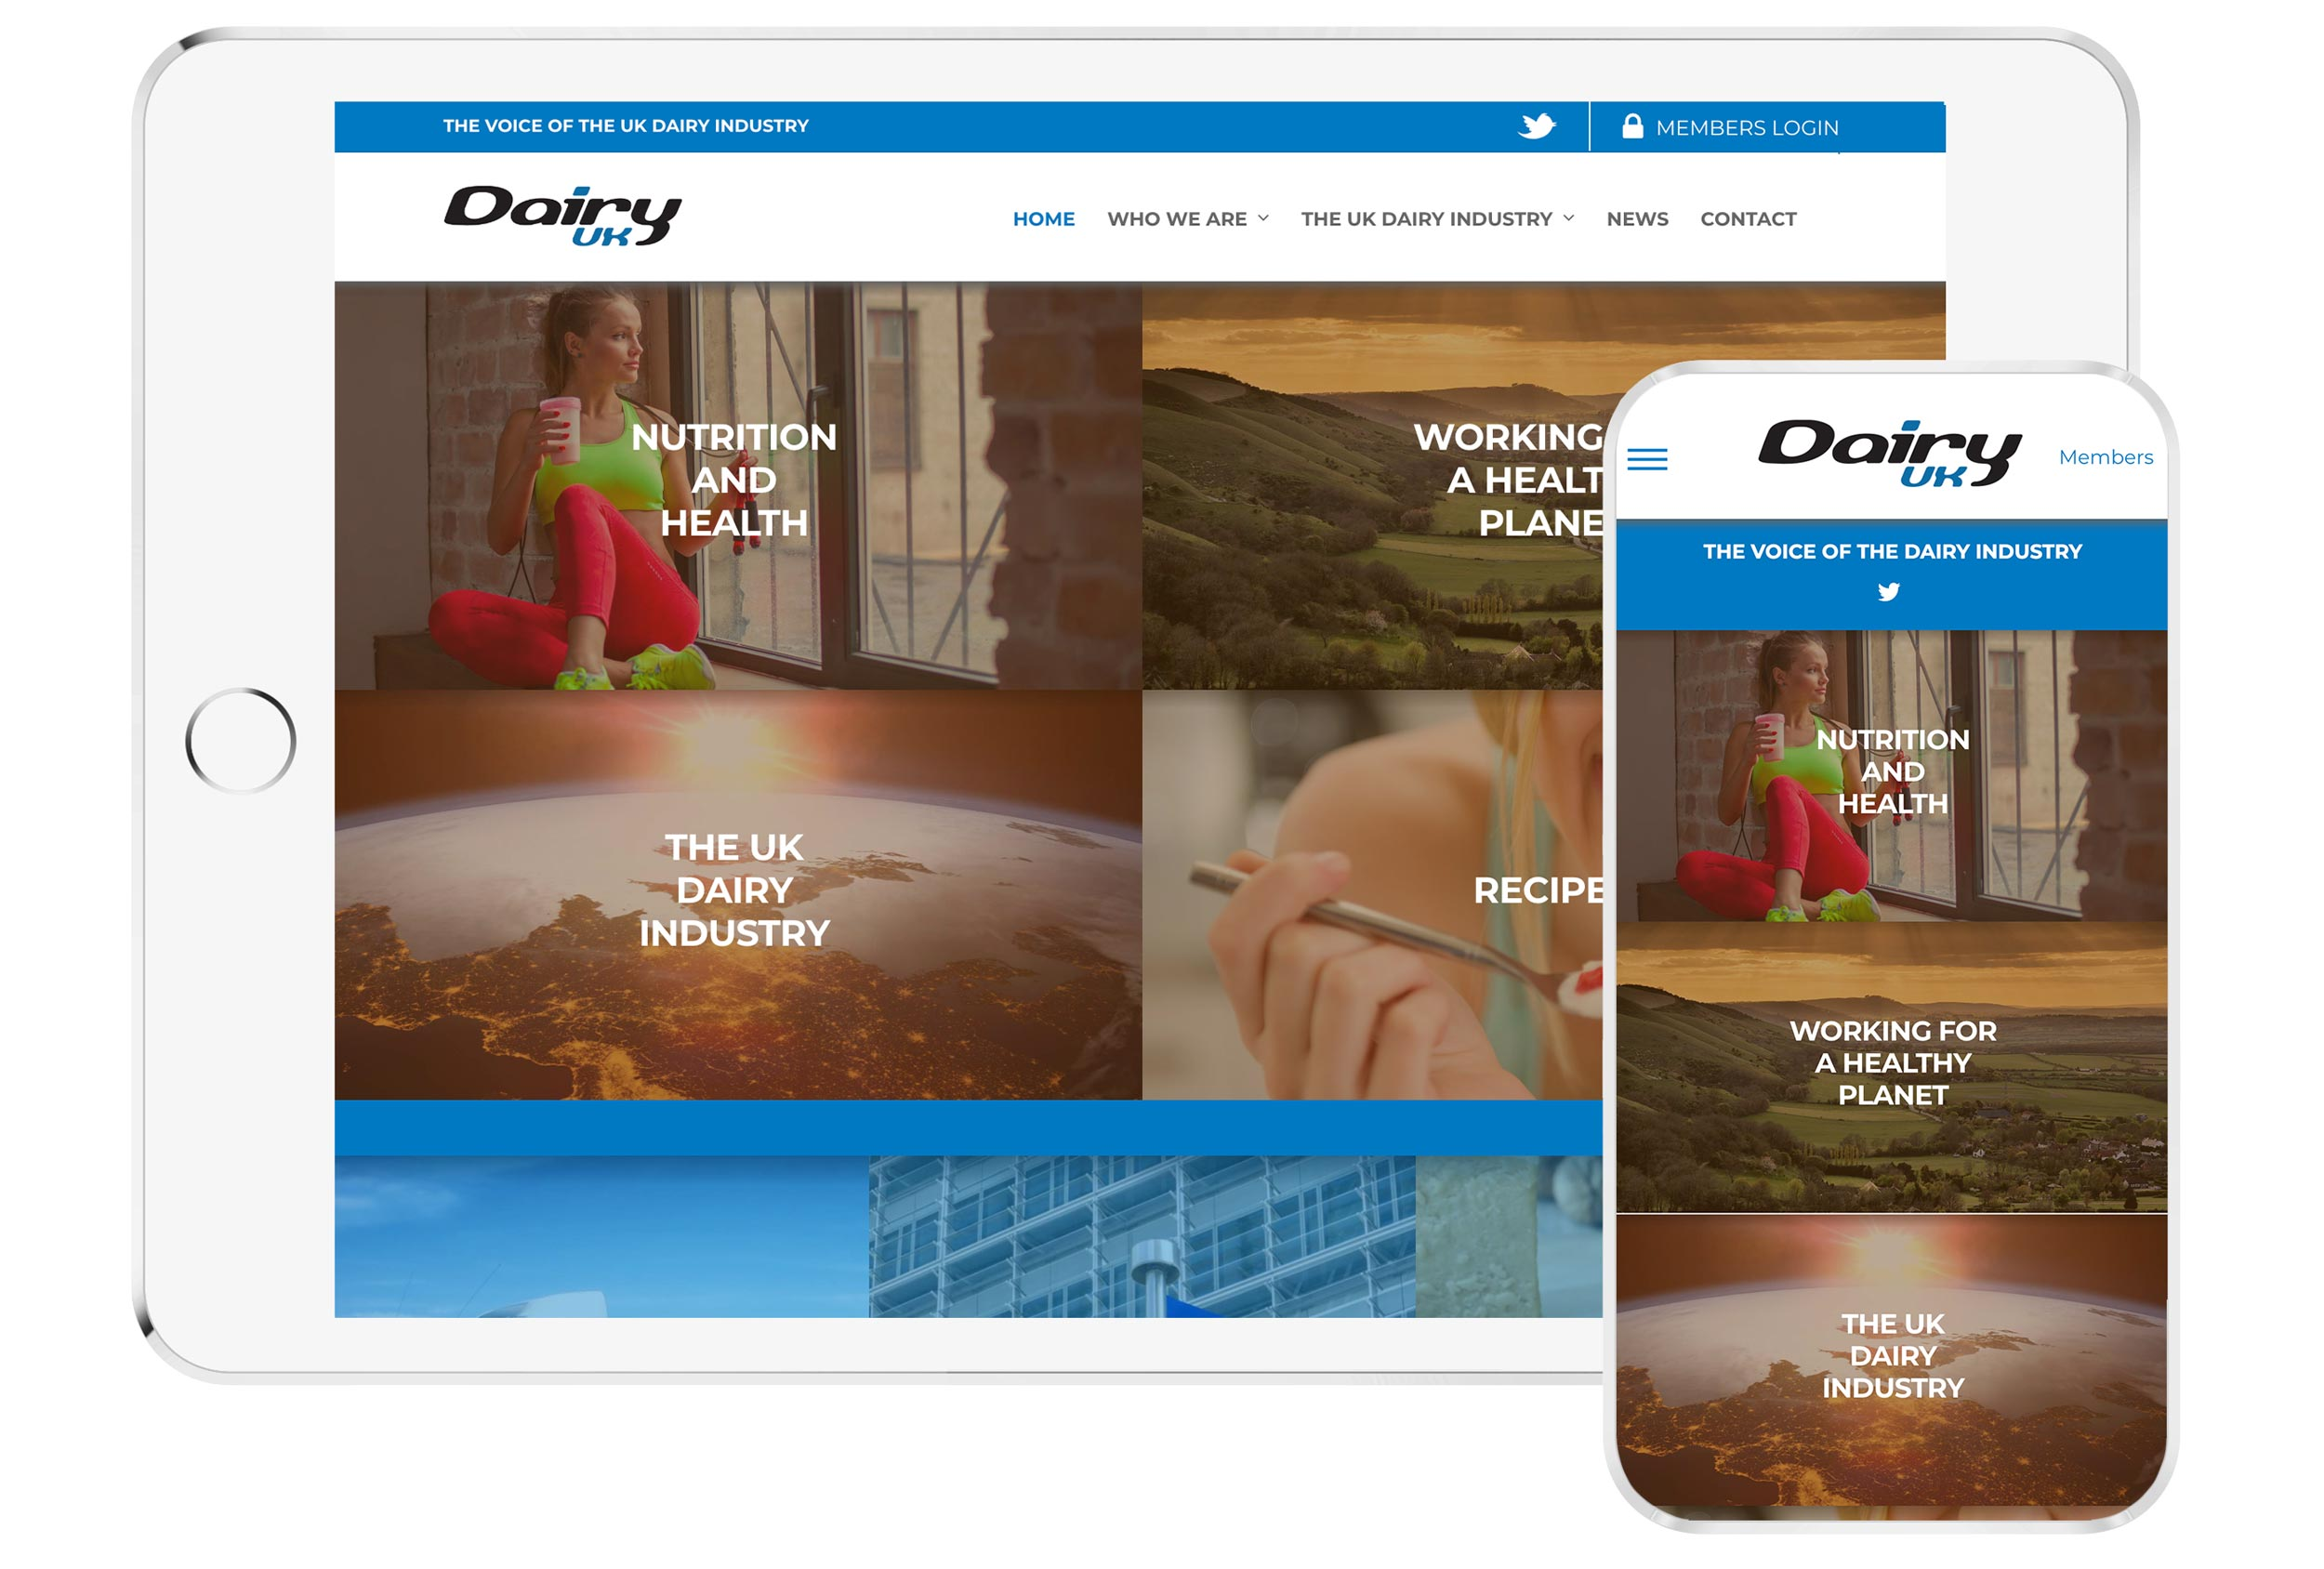 dairyuk website mockup